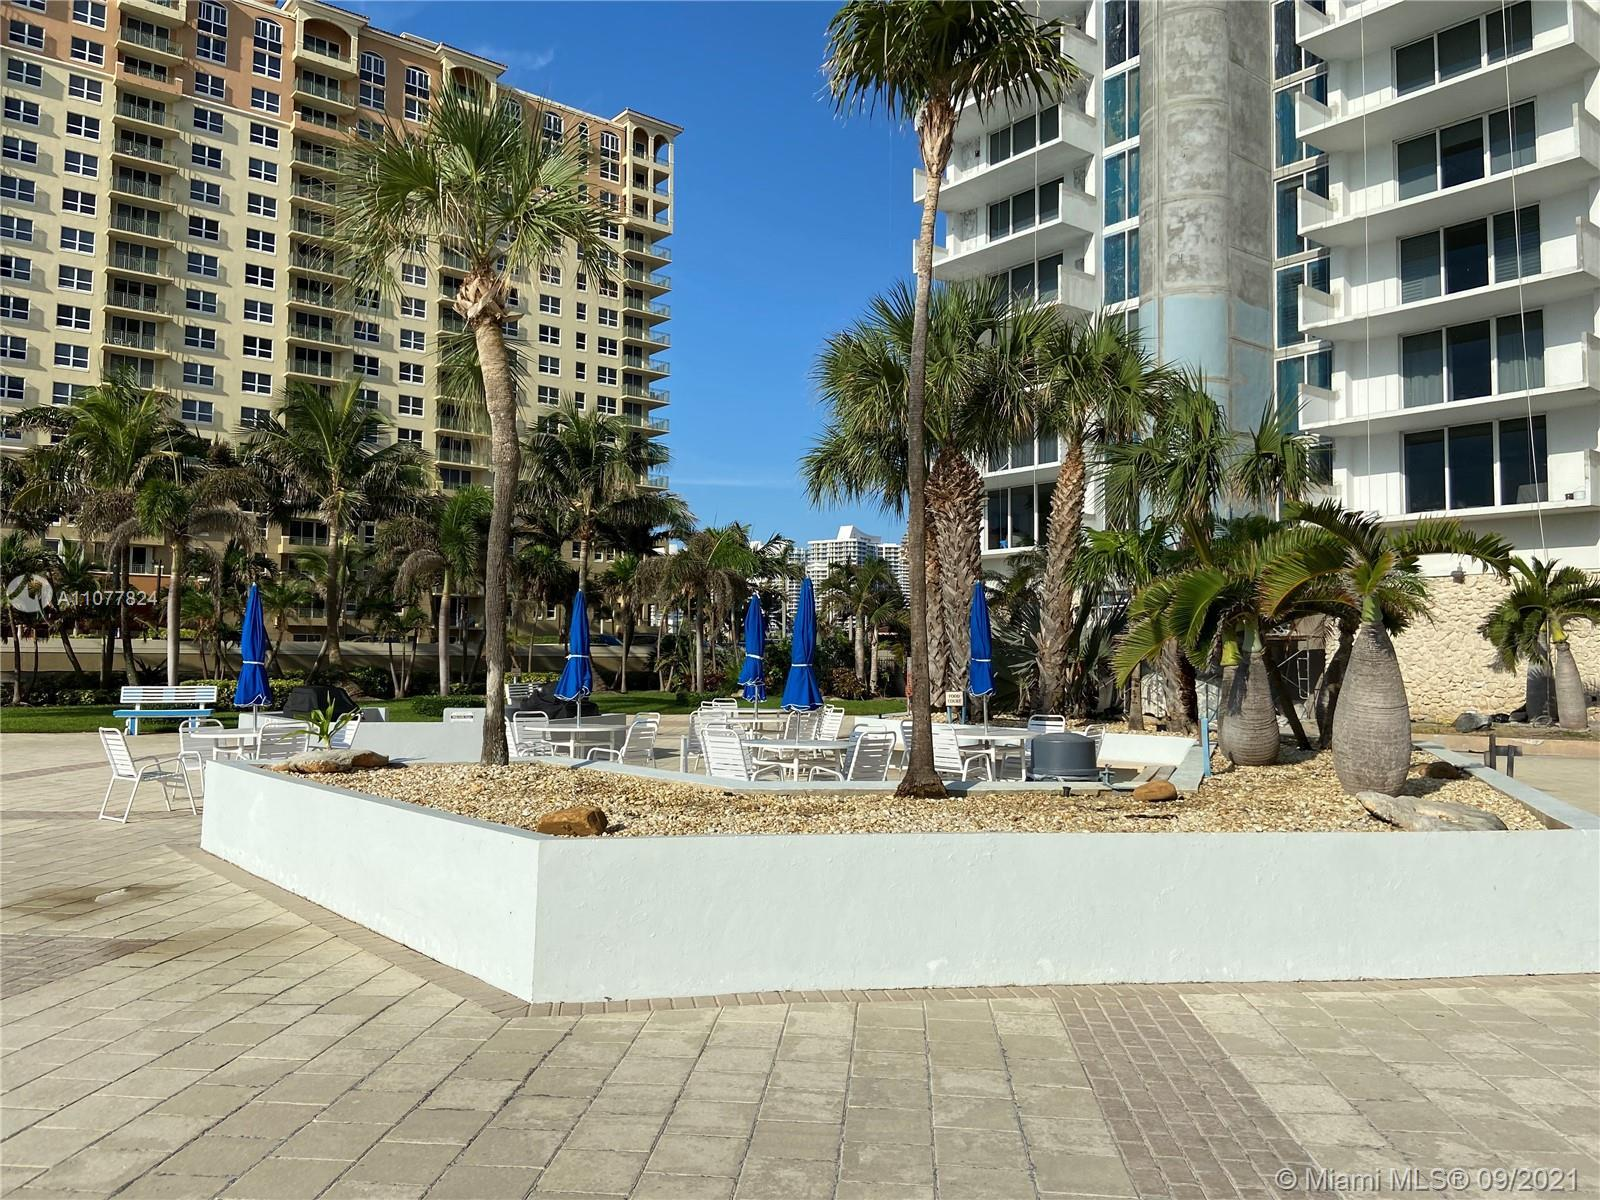 1BR/1BTH, 21ST FLOOR, BEAUTIFUL CITY VIEW, RIGHT ON THE BEACH, FULLY UPGRADED, APPLIANCES, HUGE BALC